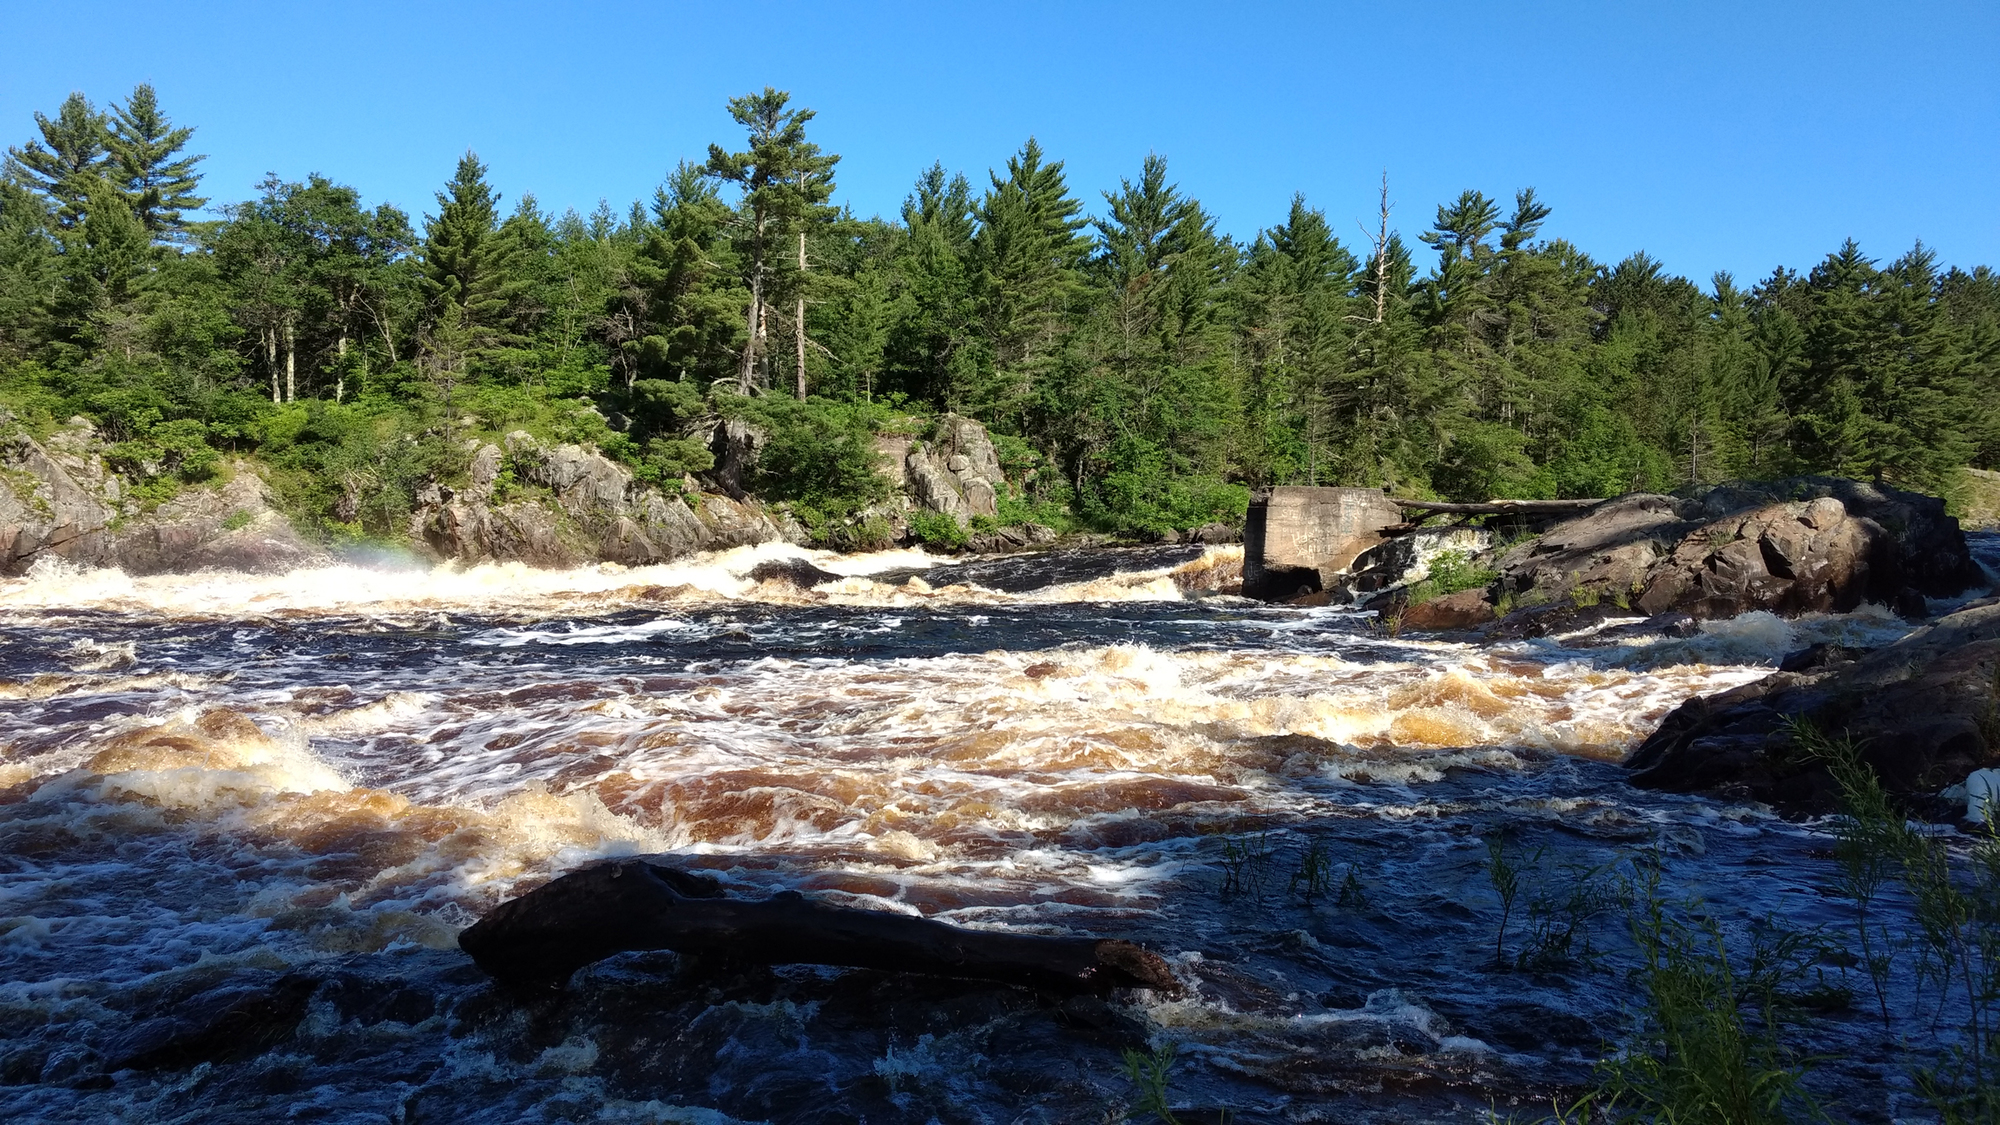 The Menominee River was photographed flowing at a high rate this week in the southwestern Upper Peninsula in Dickinson County.